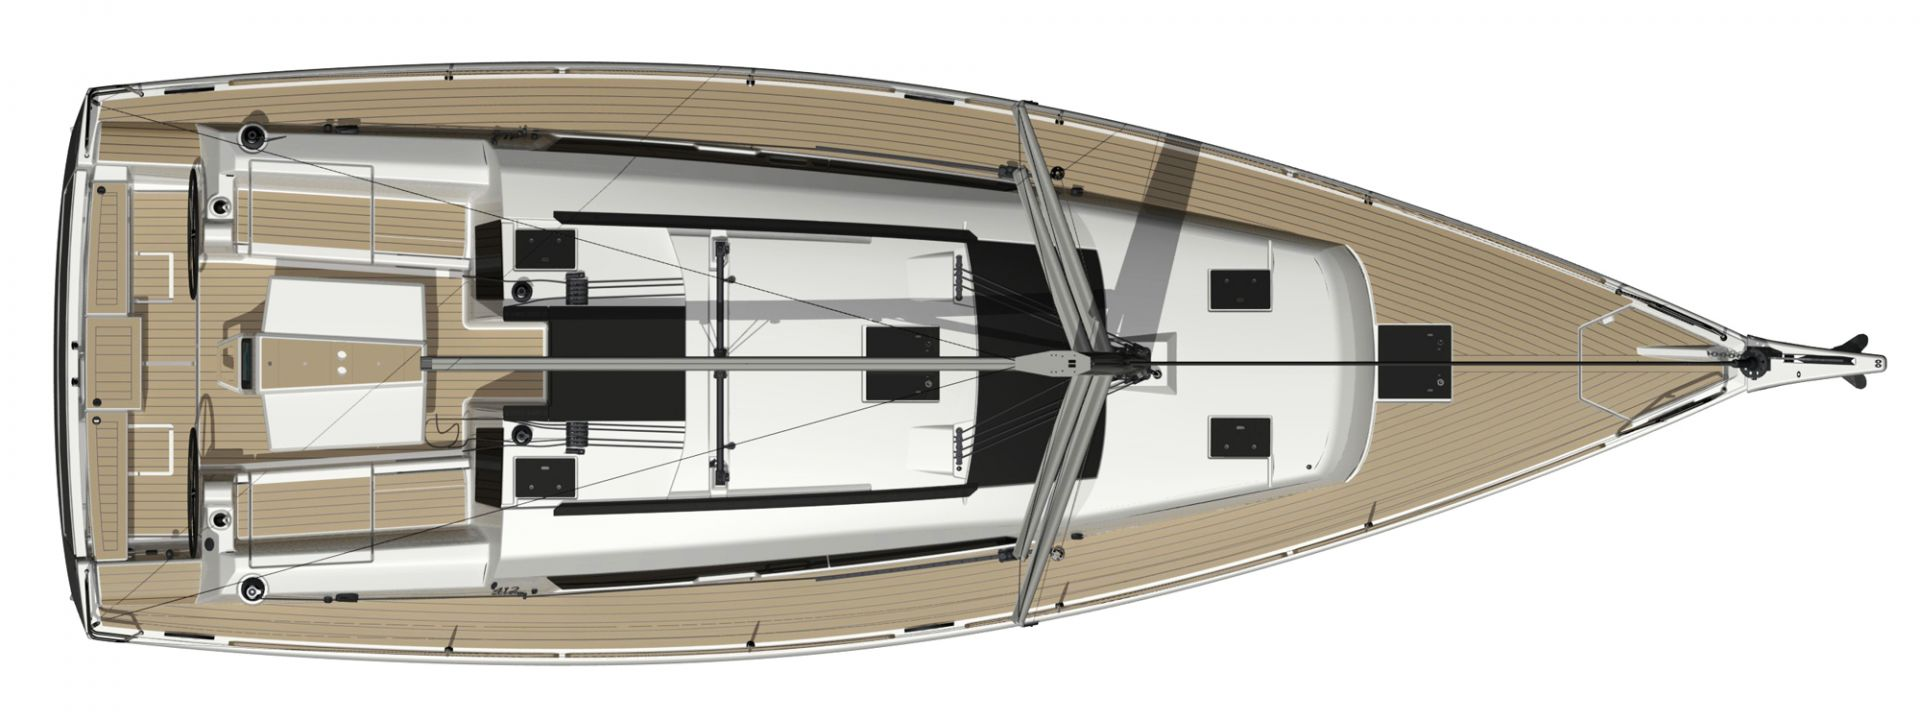 Dufour 412 Grand Large - deck.jpg